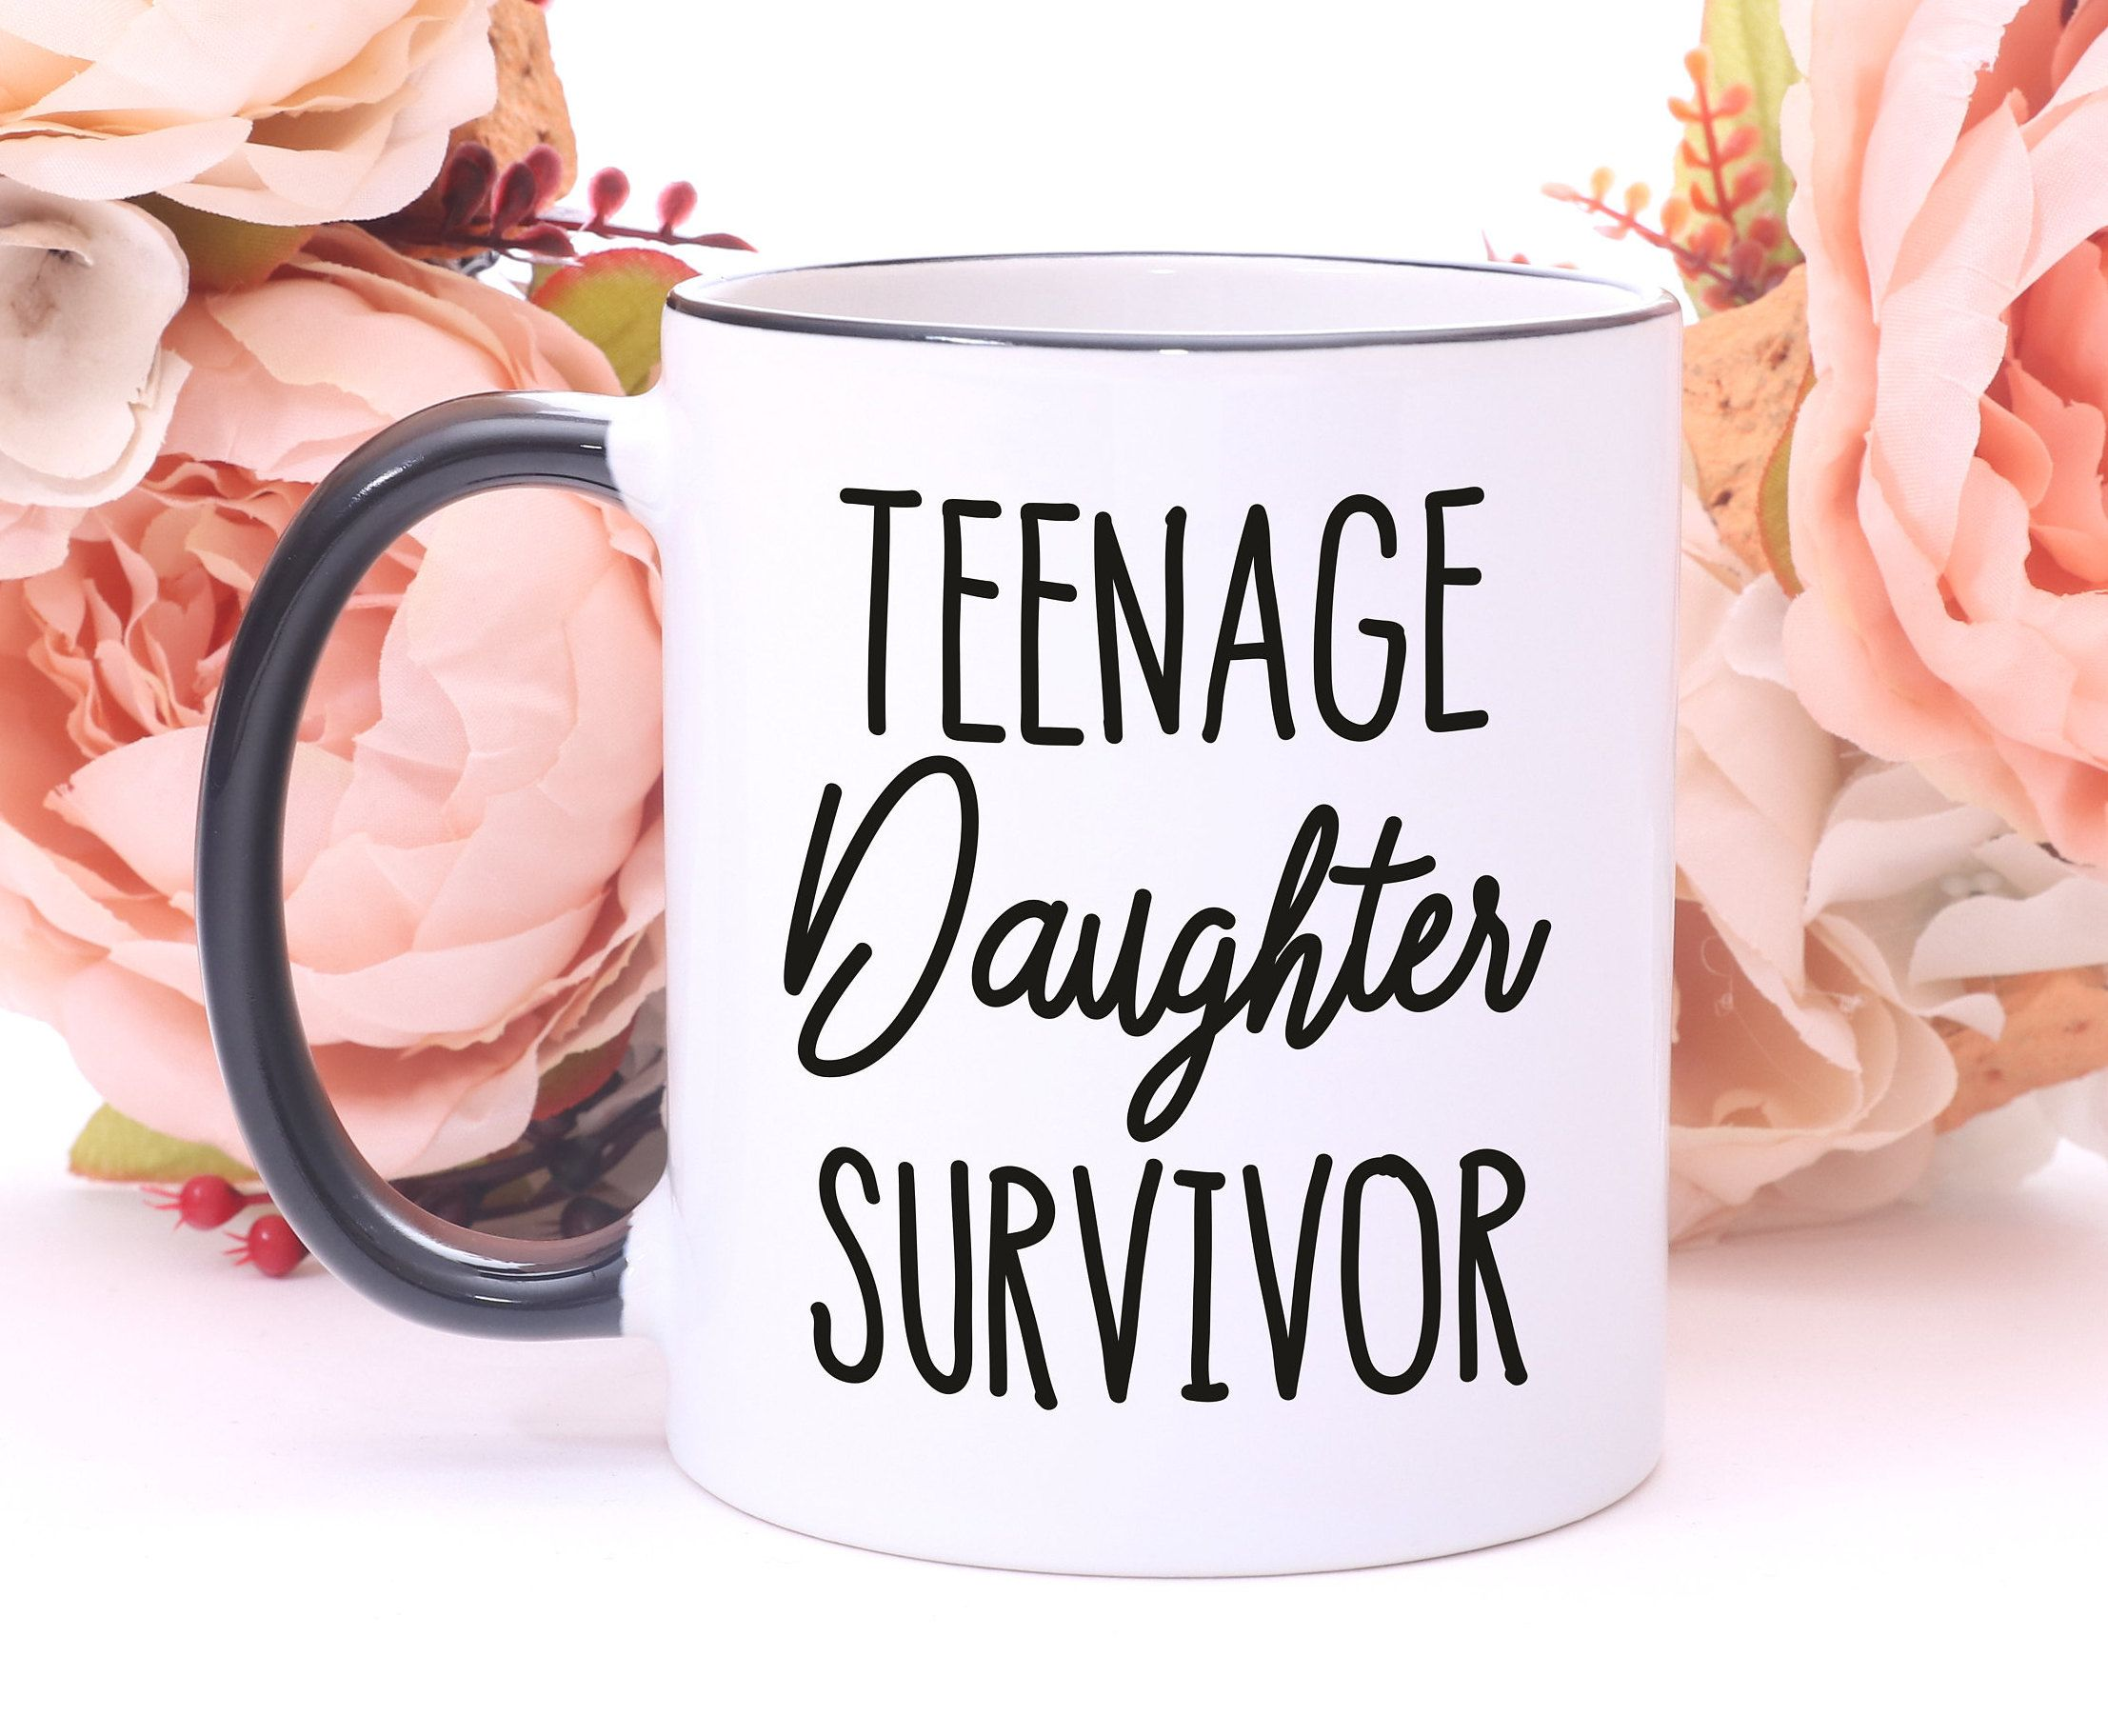 Teenage Daughter Survivor MugDaddy GiftsDad Birthday GiftFather GiftsGift From DaughterDad MugGift For DadFathers Day Mug By Mhuglife On